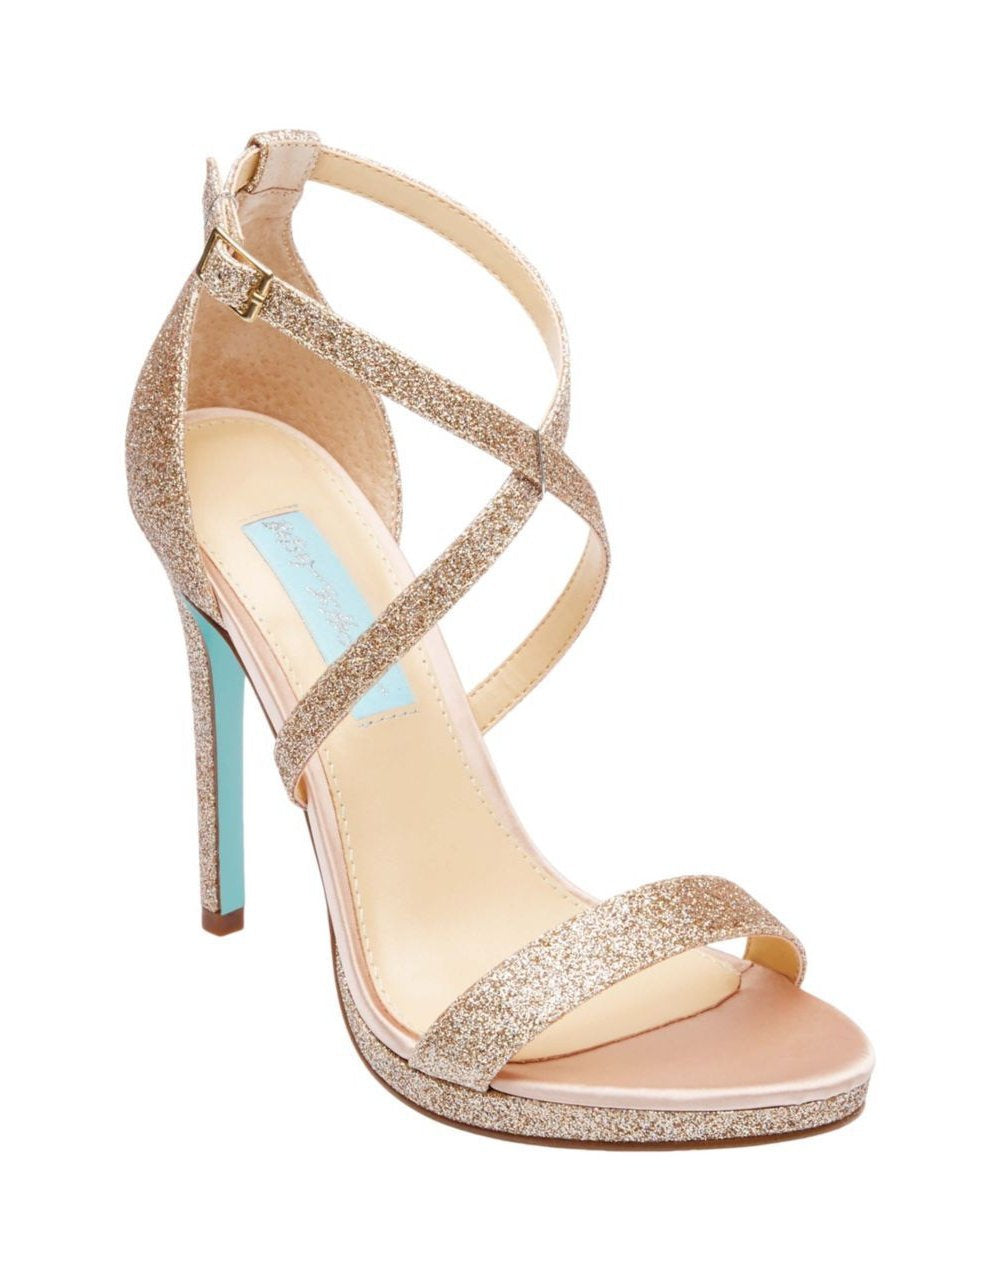 SB-ANDI CHAMPAGNE - SHOES - Betsey Johnson